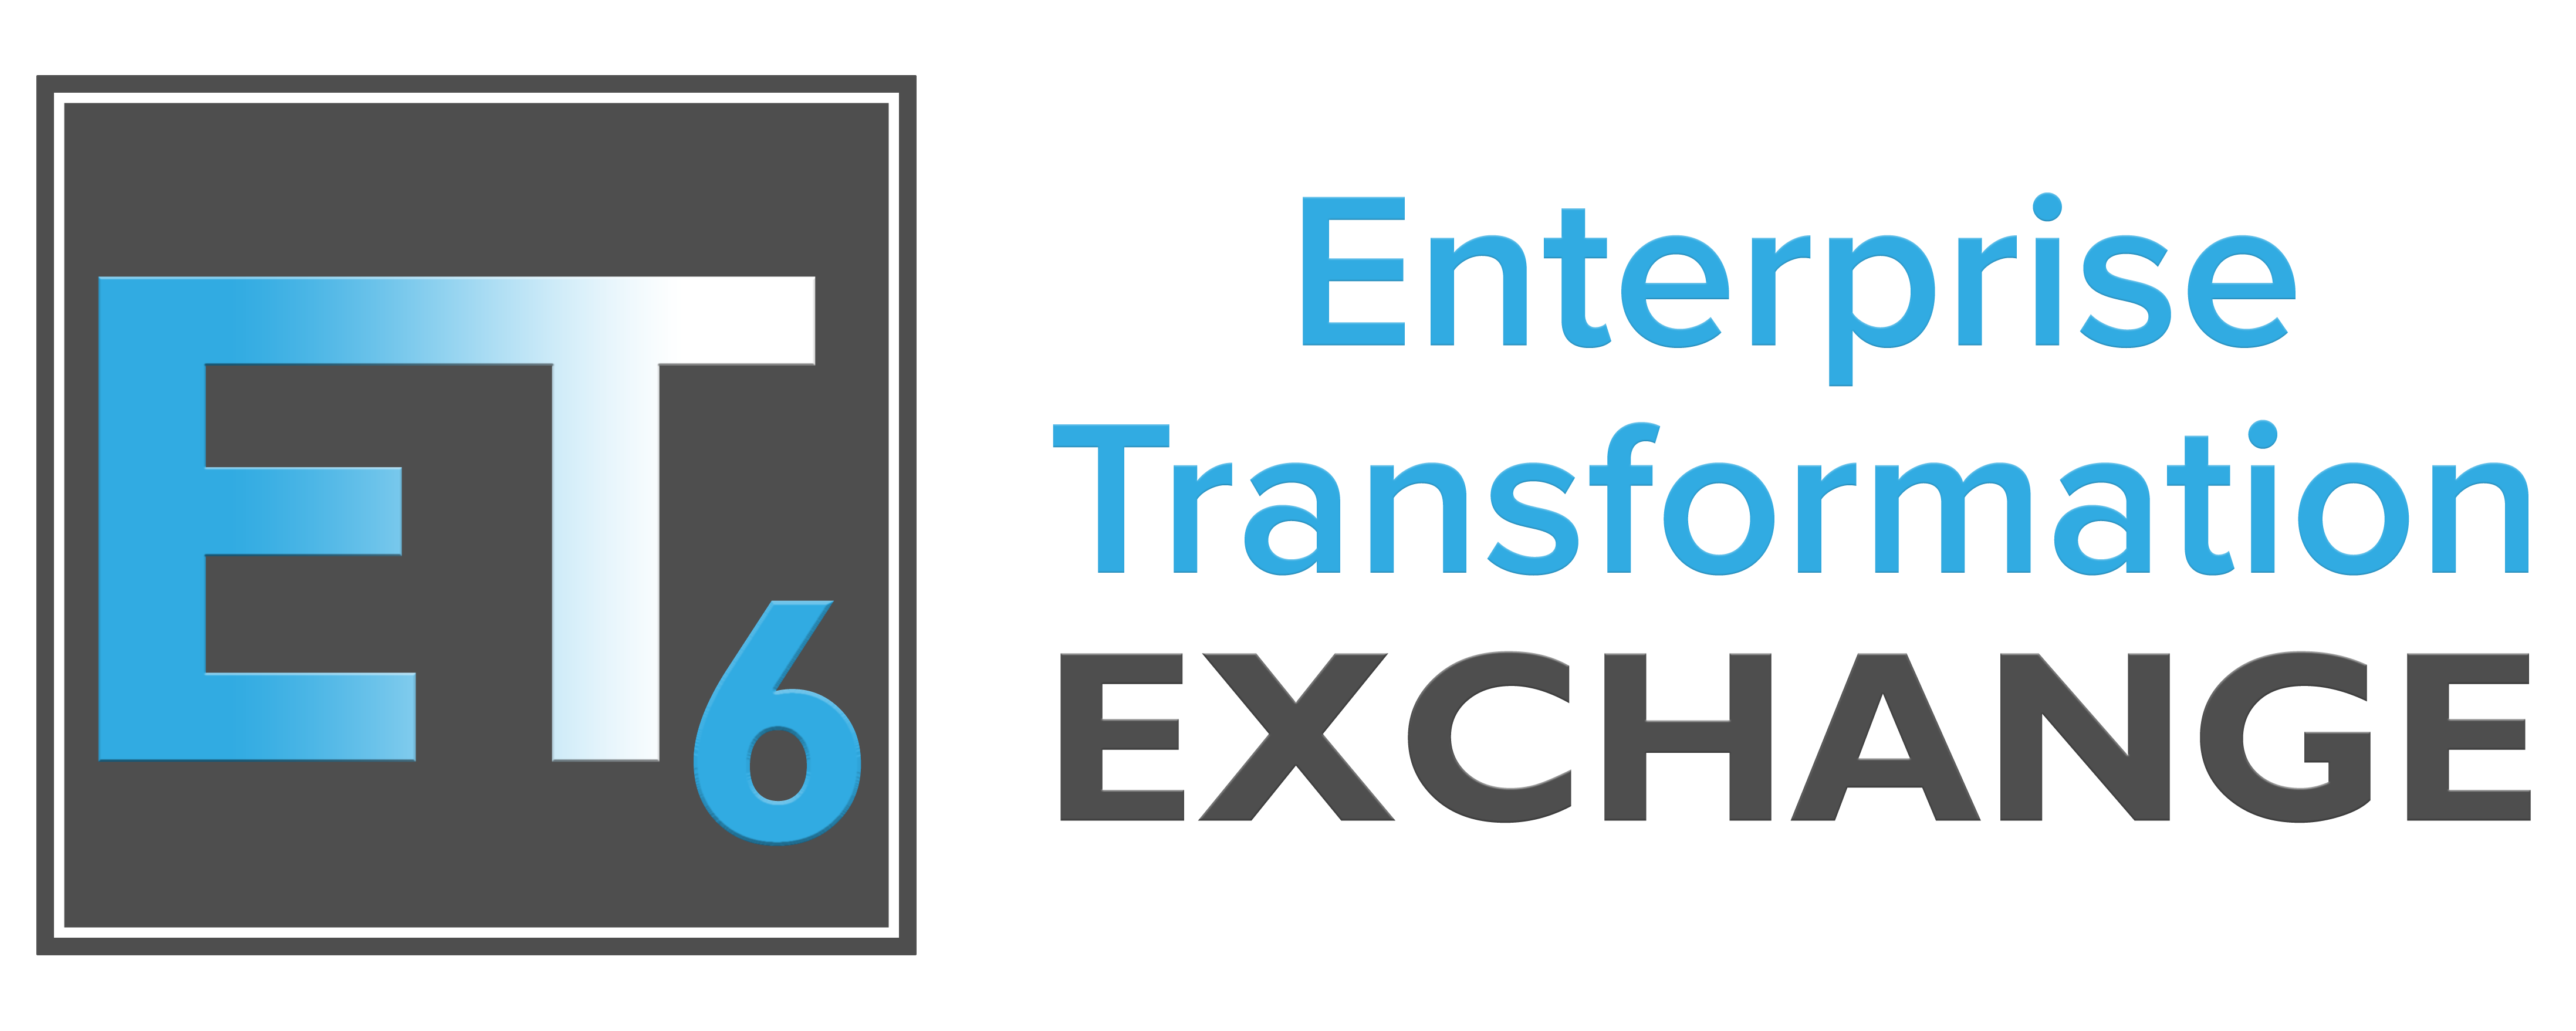 ET6 Exchange Logo and Home Button